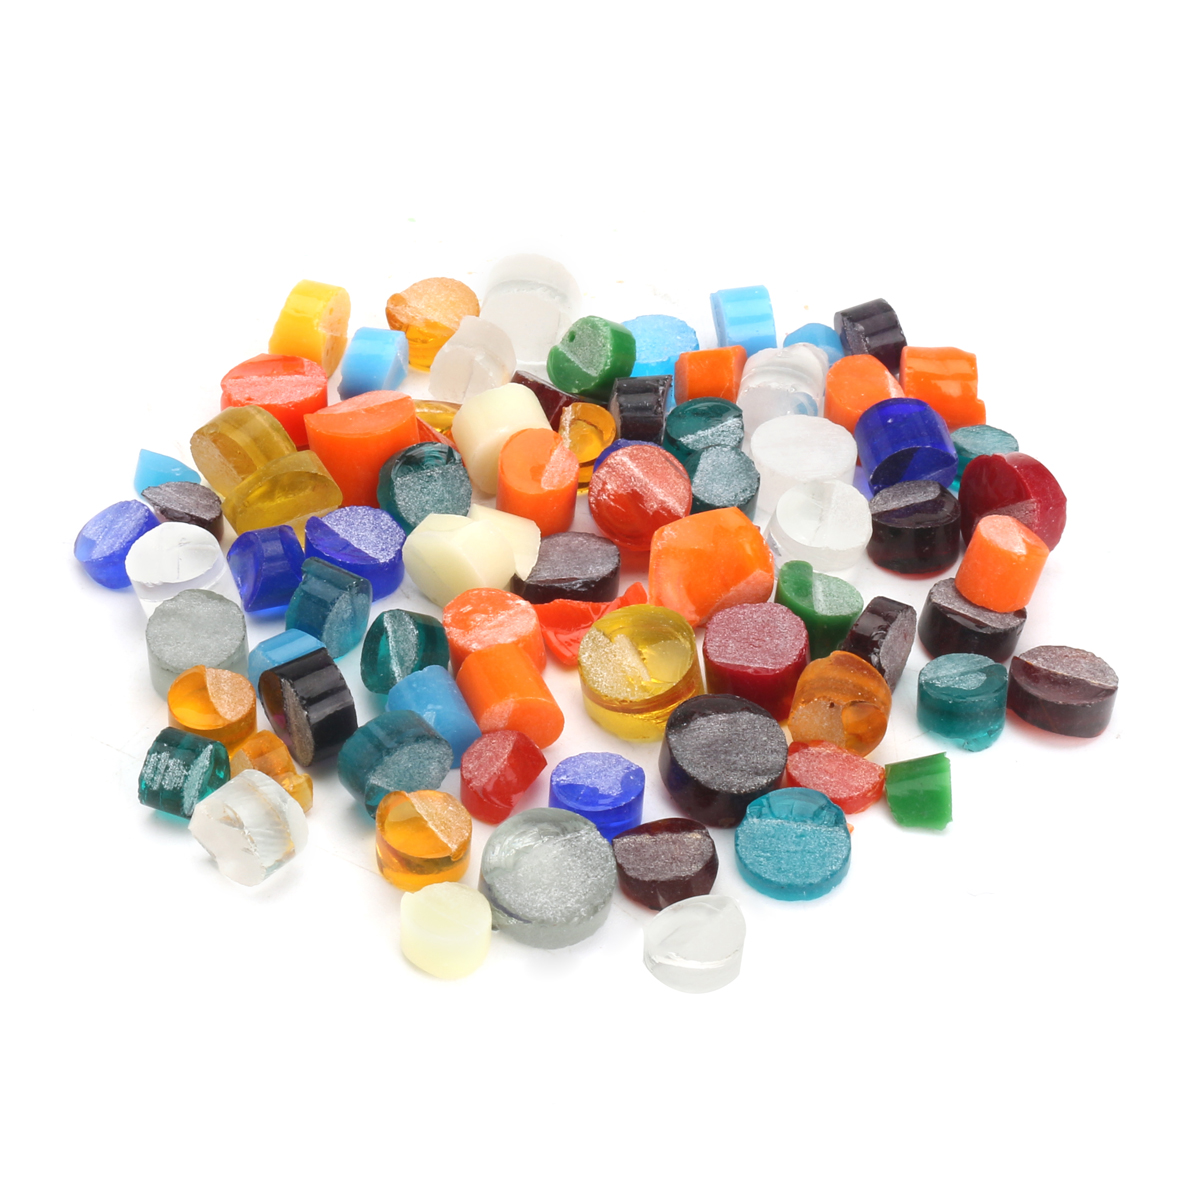 60g Multicolor Fusing Glass Frits Fusible Cnfetti Lampwork Dots for Microwave Kiln DIY Jewelry